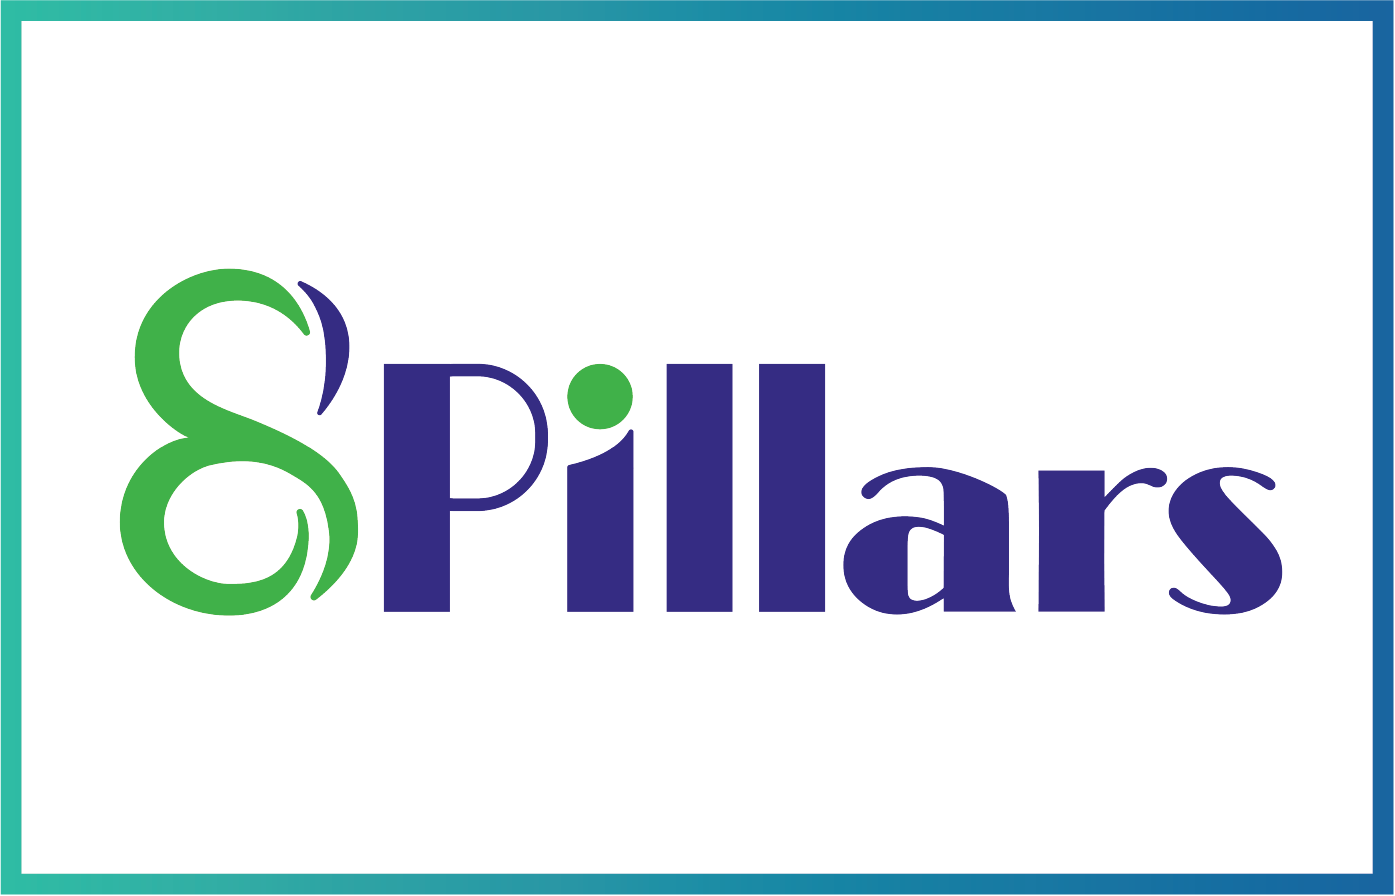 8PILLARS PTY LTD LOGO